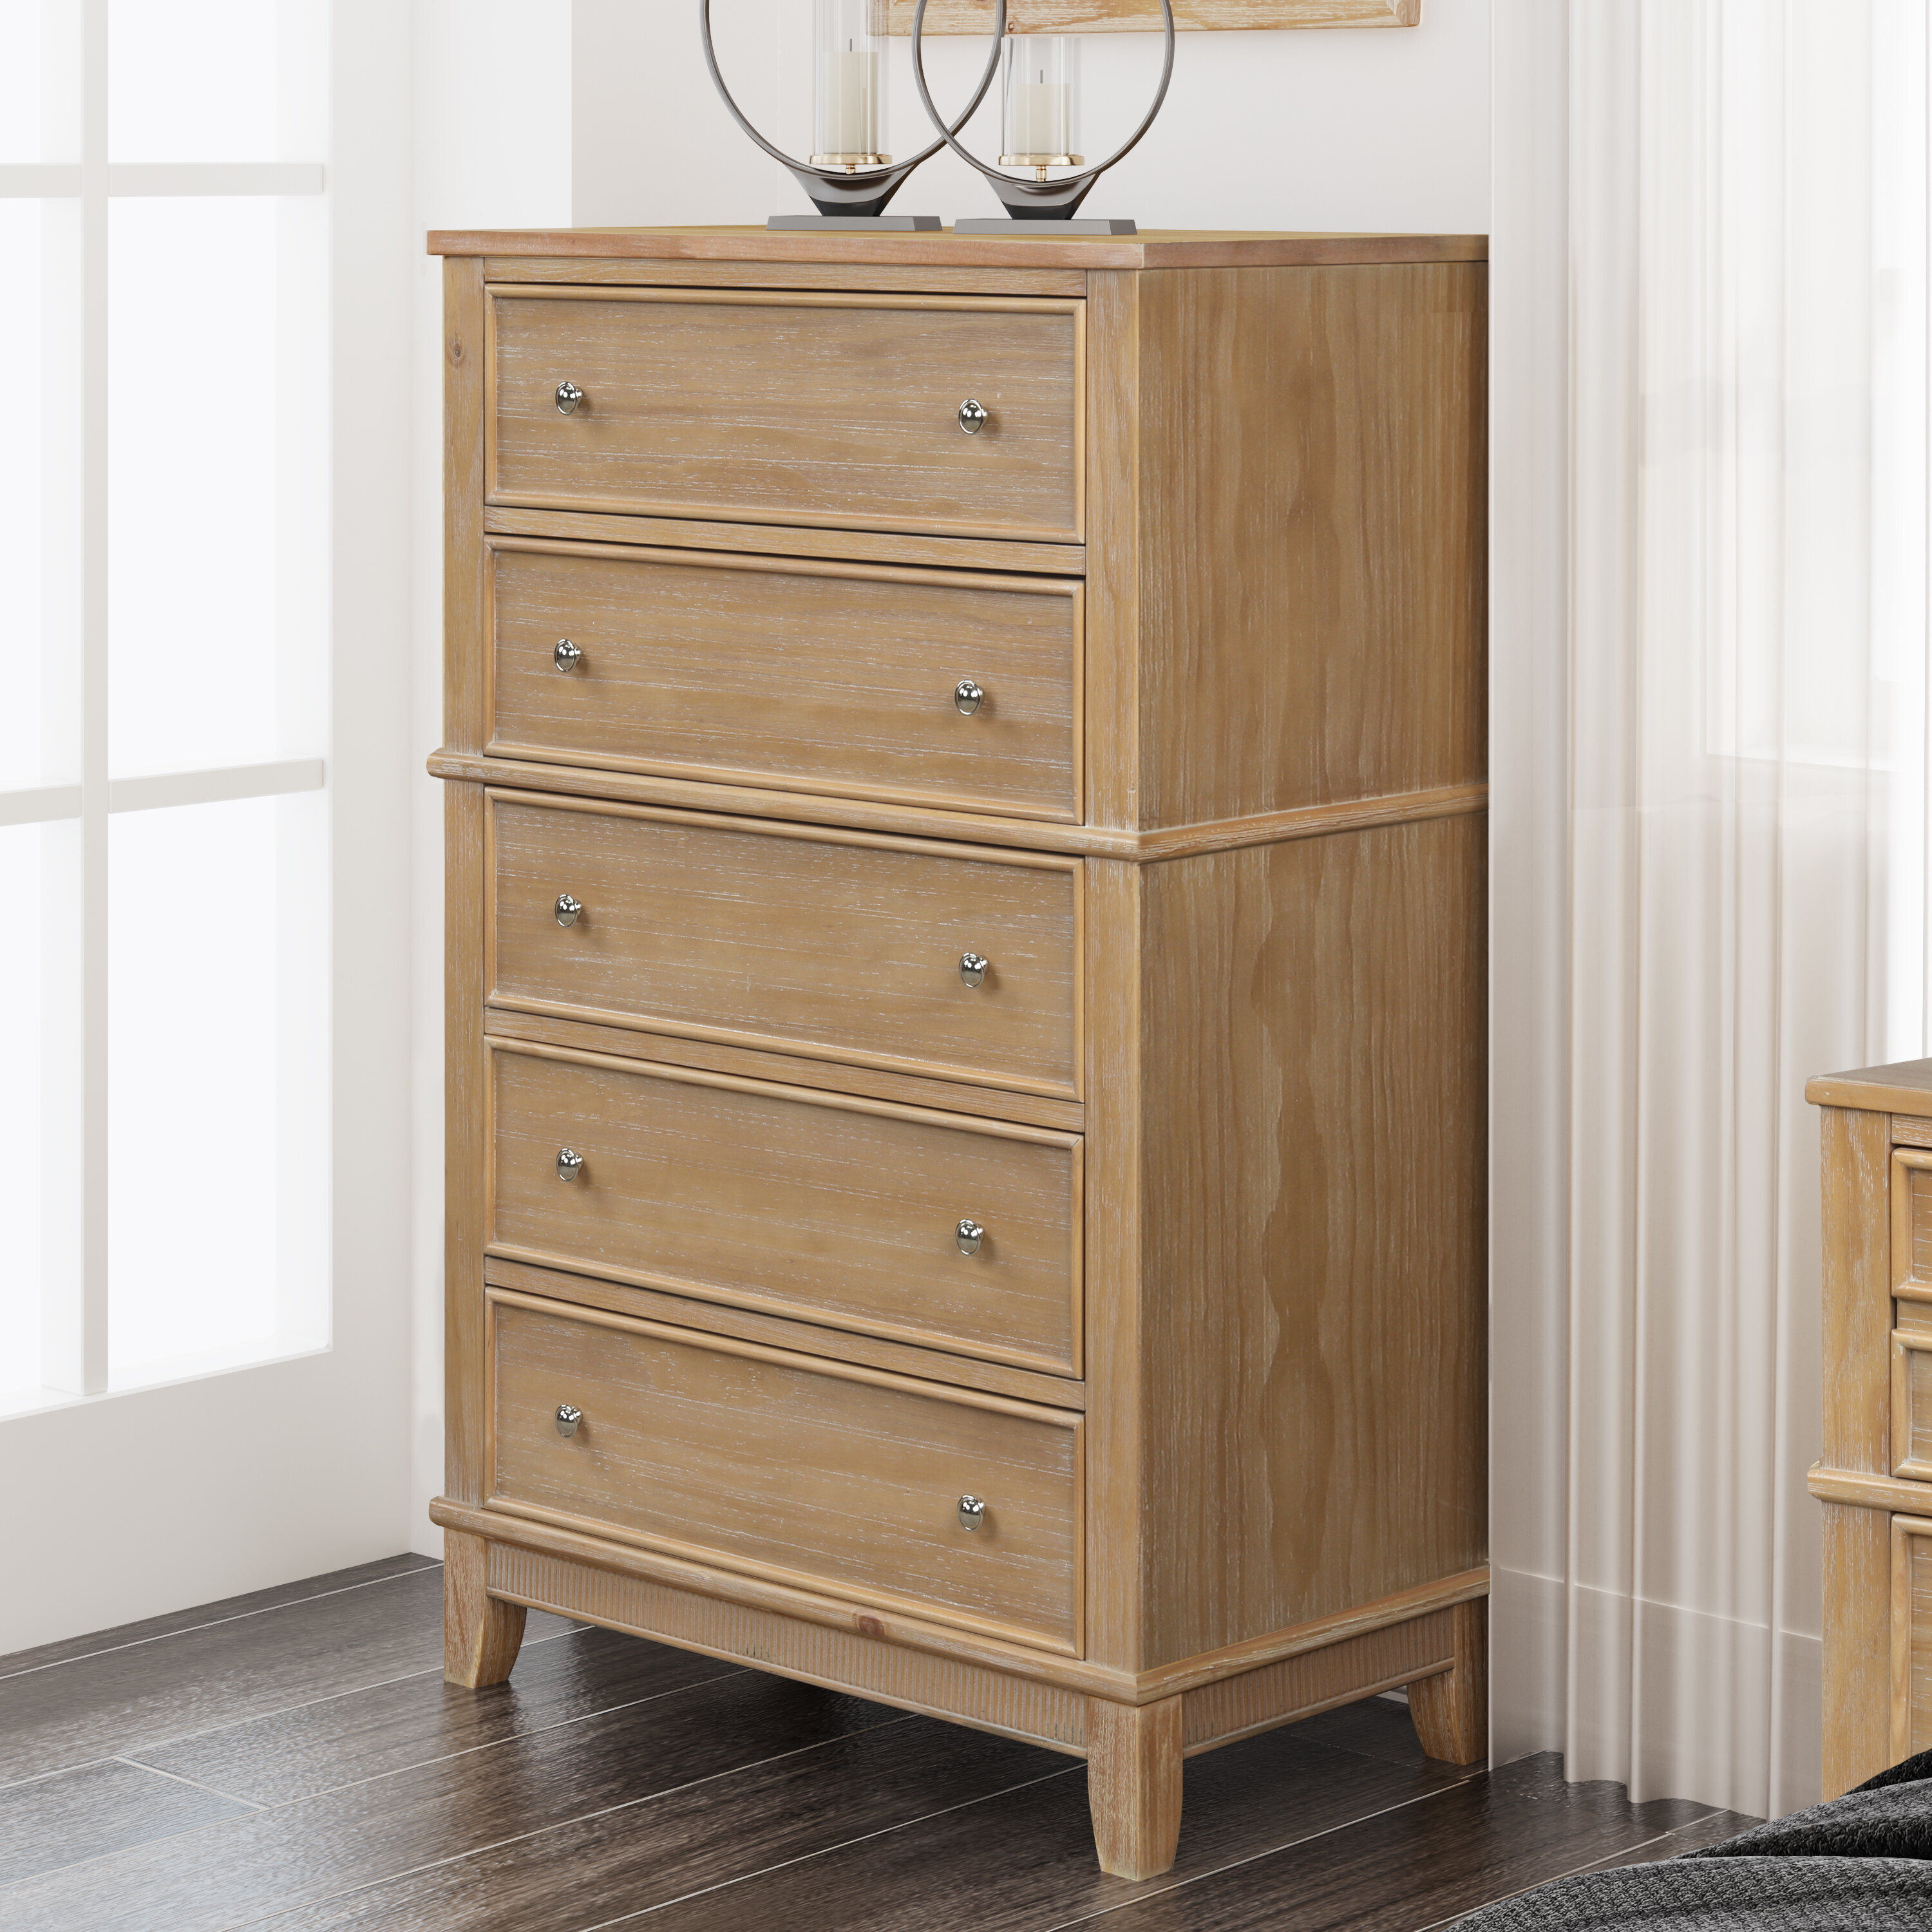 5 Drawer Alcott Hill Dressers Chests You Ll Love In 2021 Wayfair